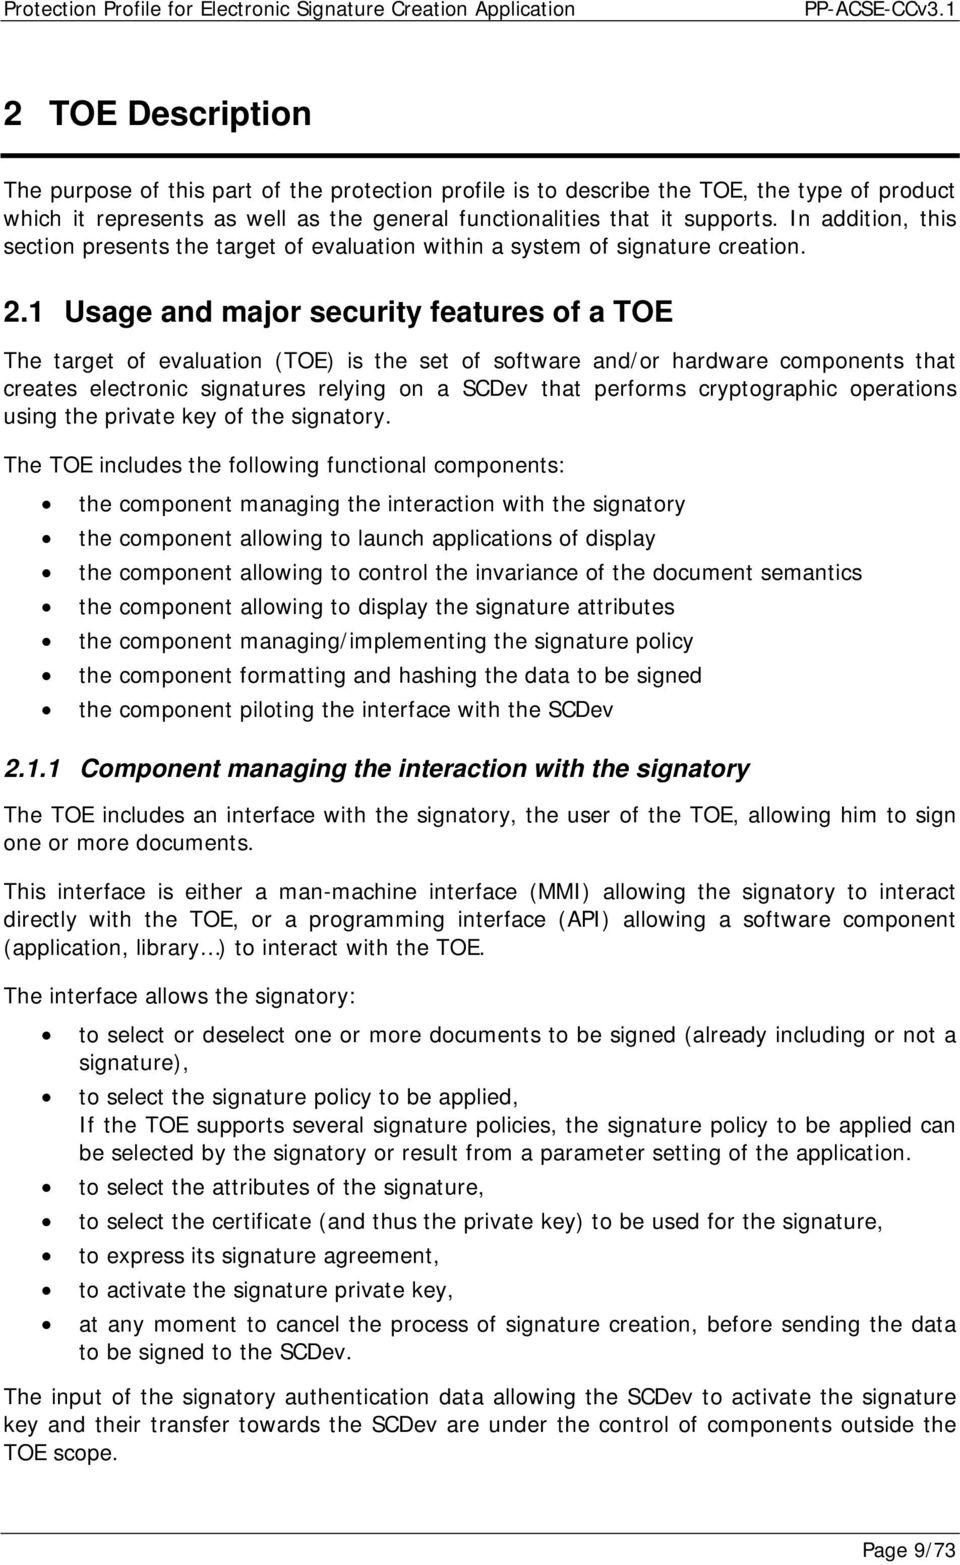 1 Usage and major security features of a TOE The target of evaluation (TOE) is the set of software and/or hardware components that creates electronic signatures relying on a SCDev that performs